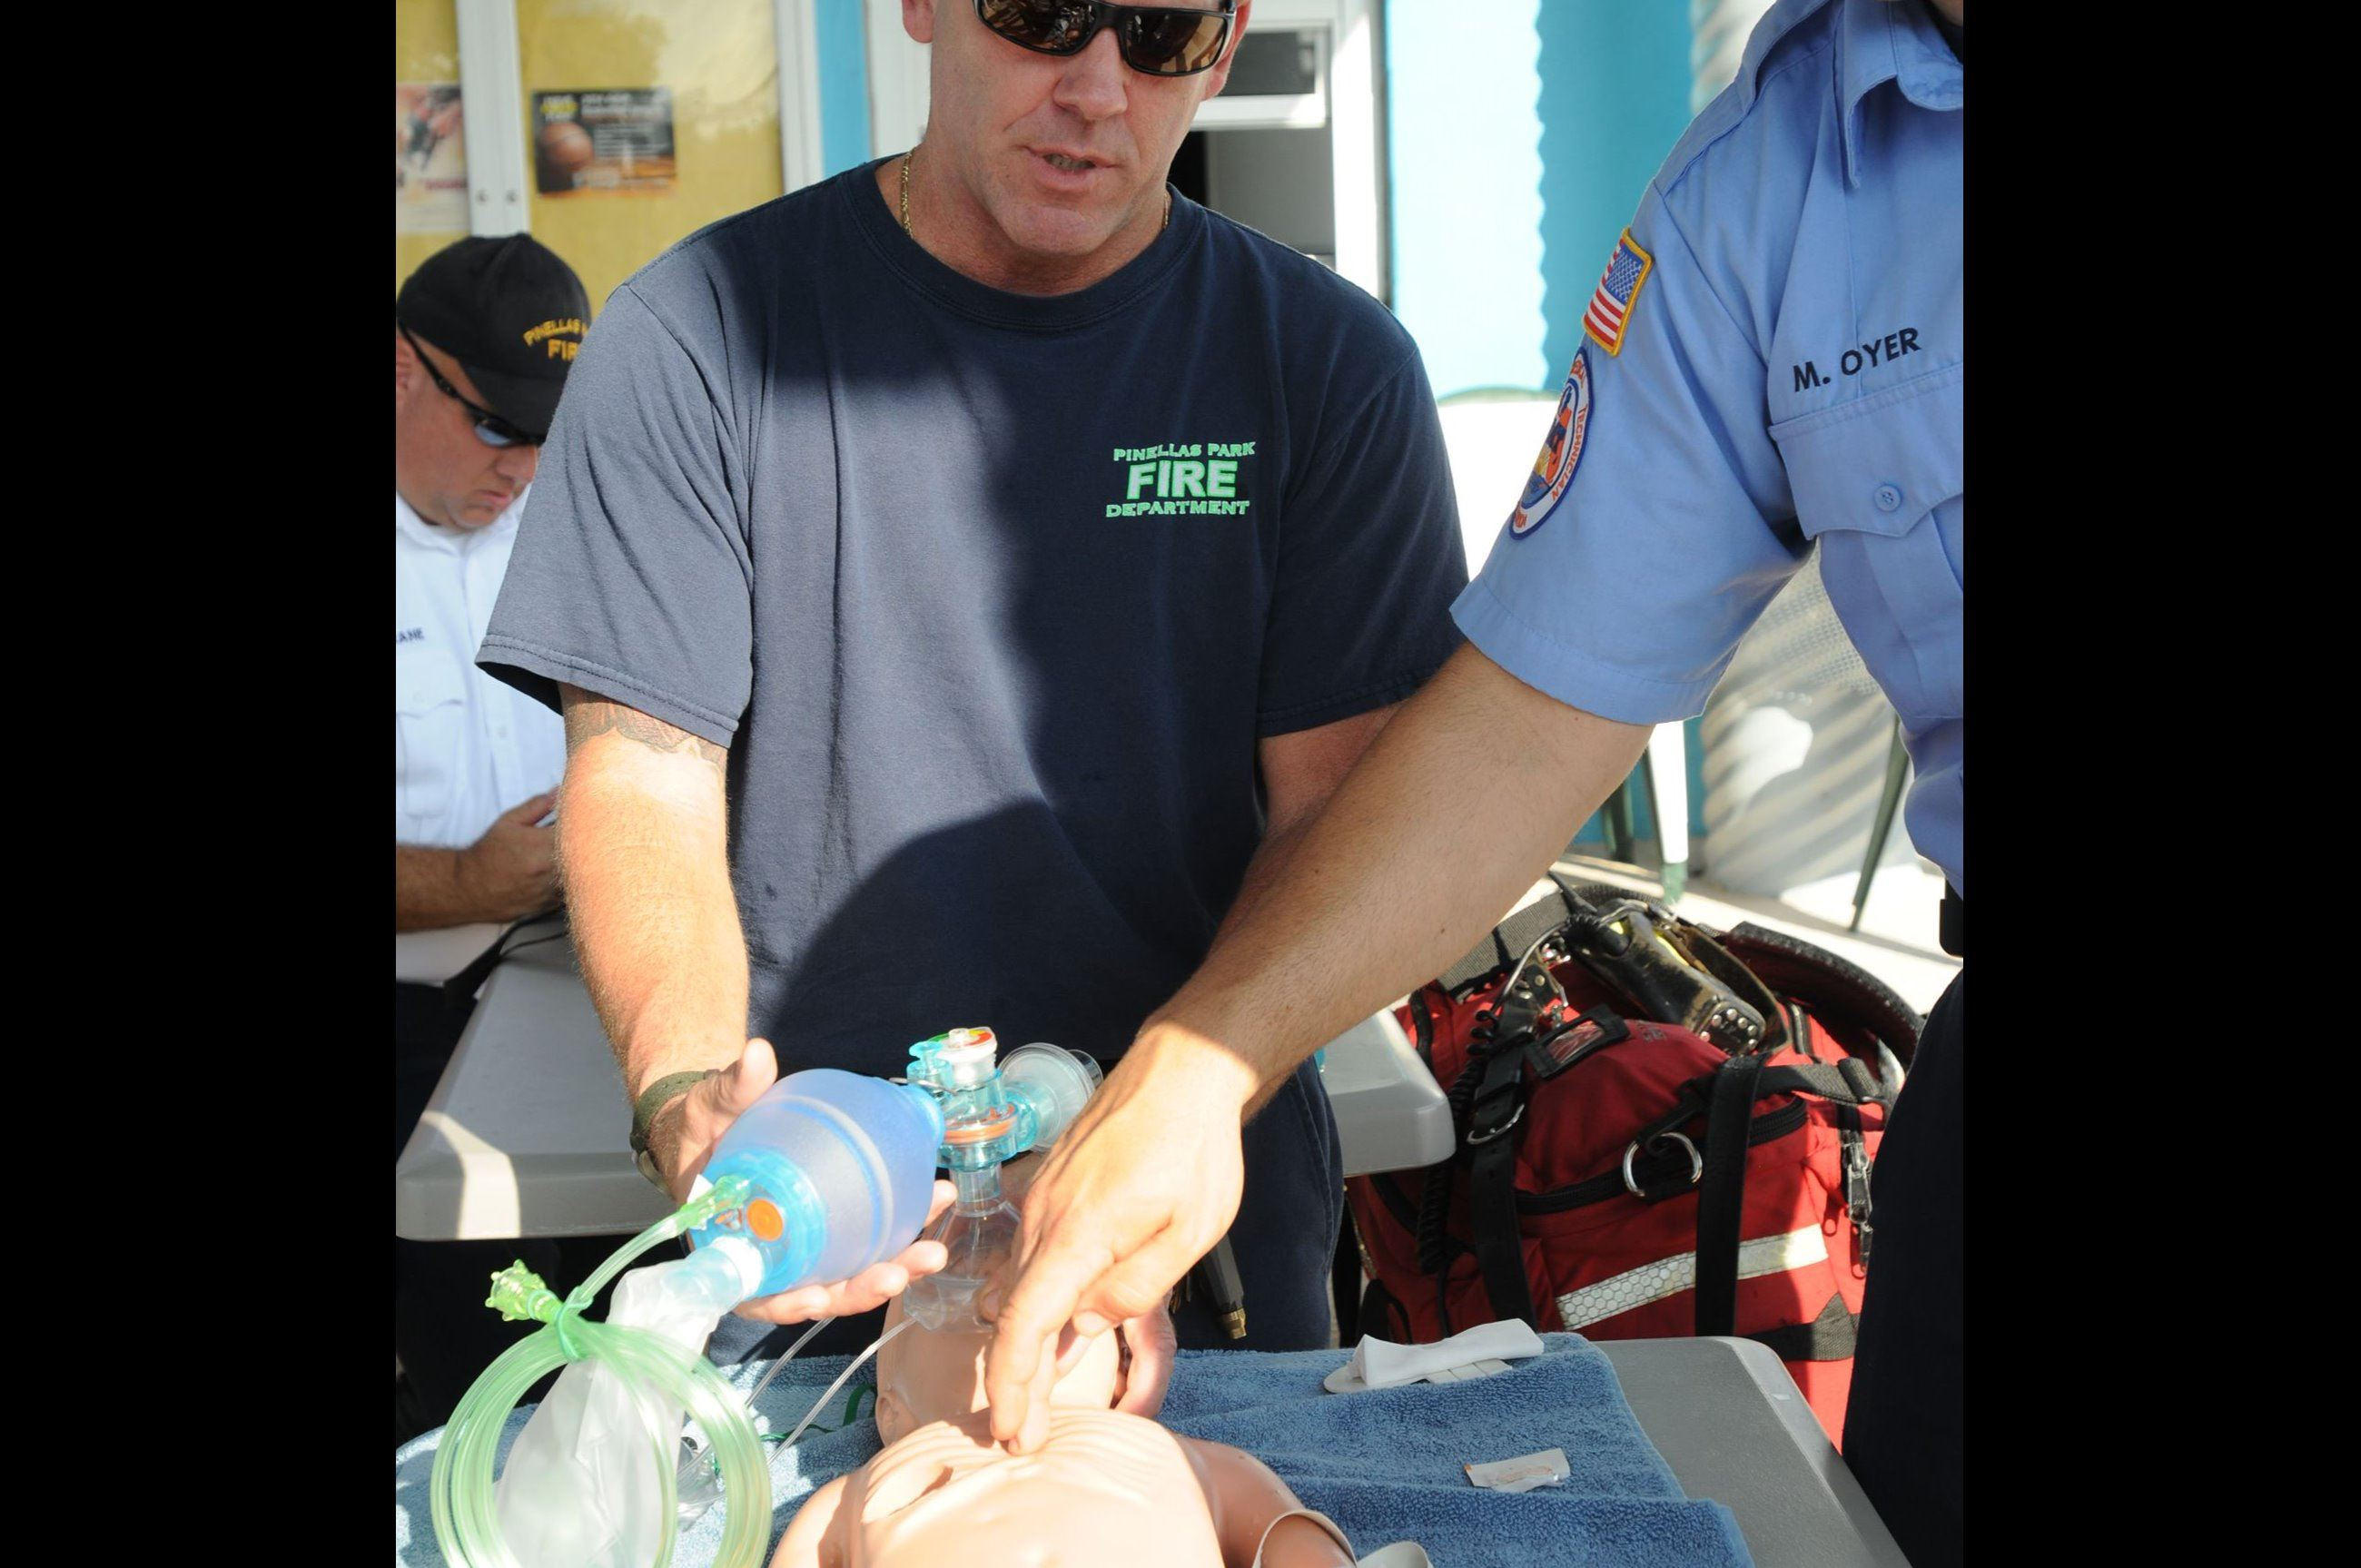 EMS trainees practicing CPR on child dummy